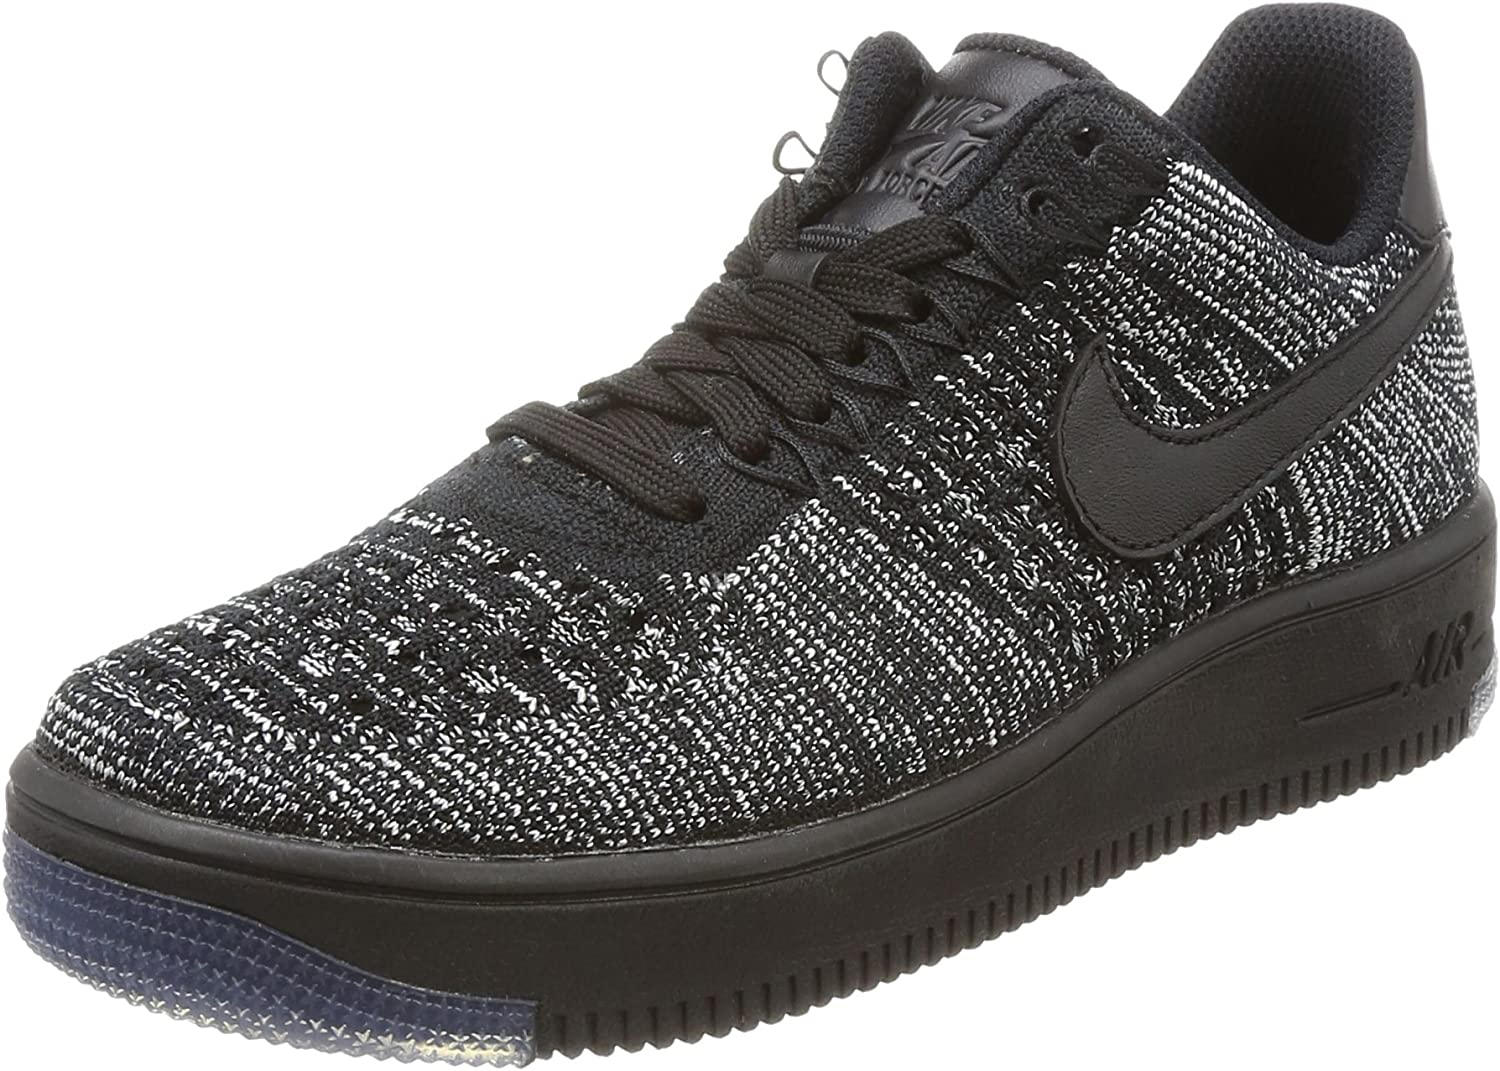 Nike Womens Af1 Air Force 1 Flyknit Low Running Trainers 820256 Sneakers Shoes